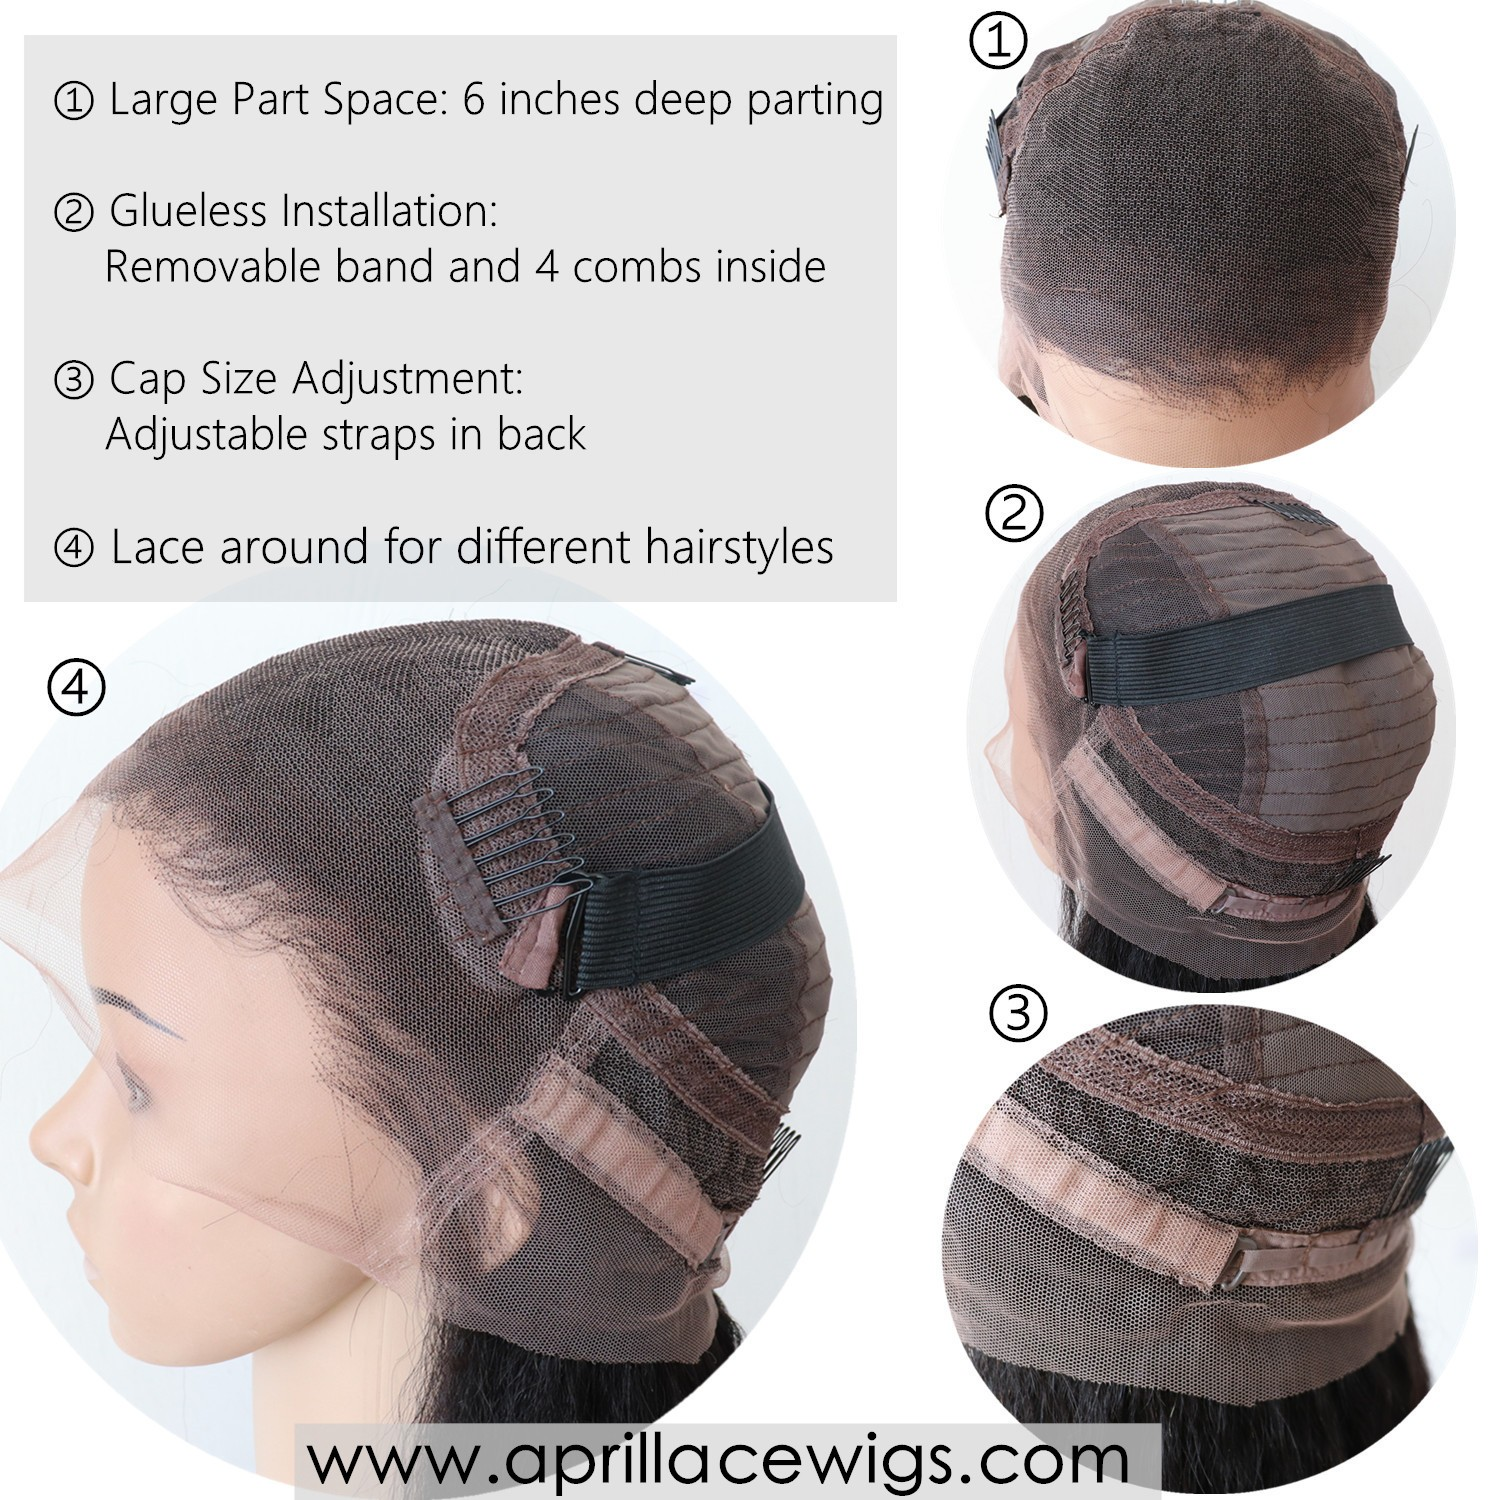 370 lace wig, 370 wigs